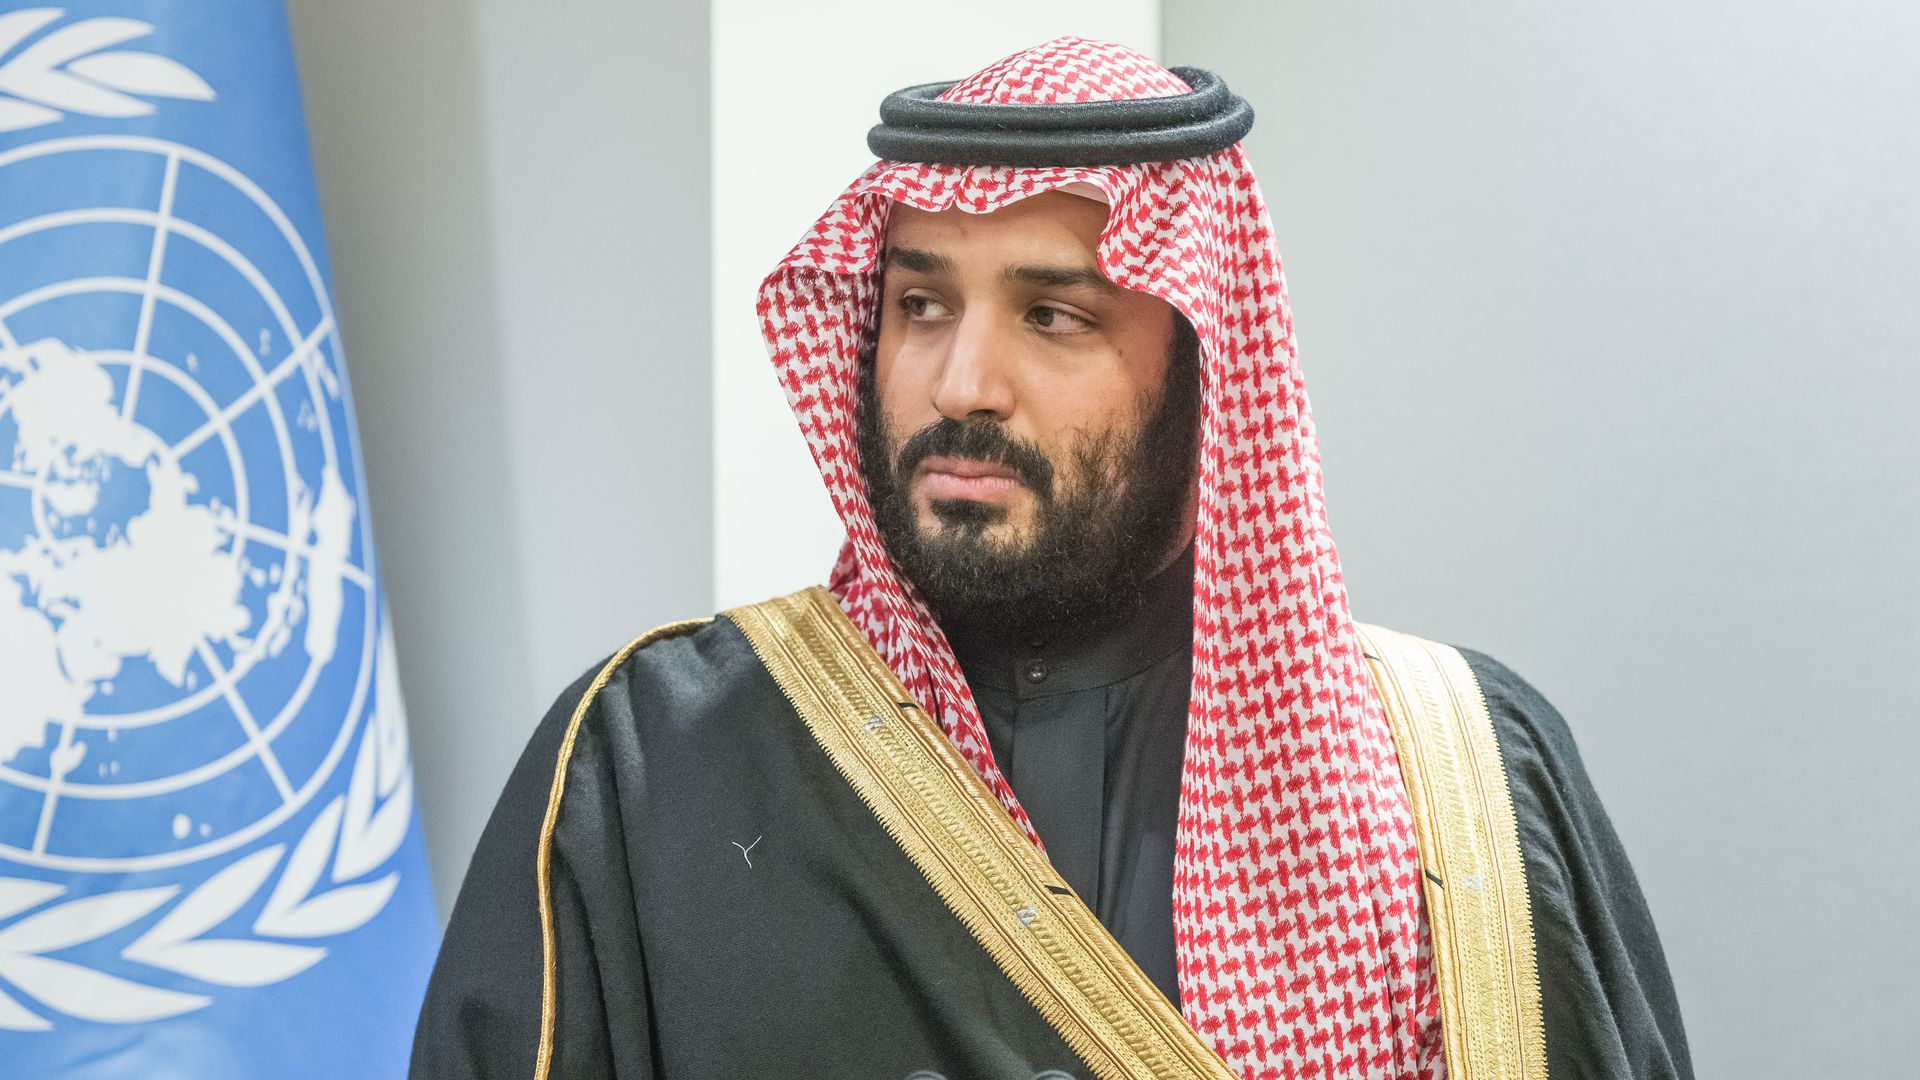 Mohammad bin Salman at the UN